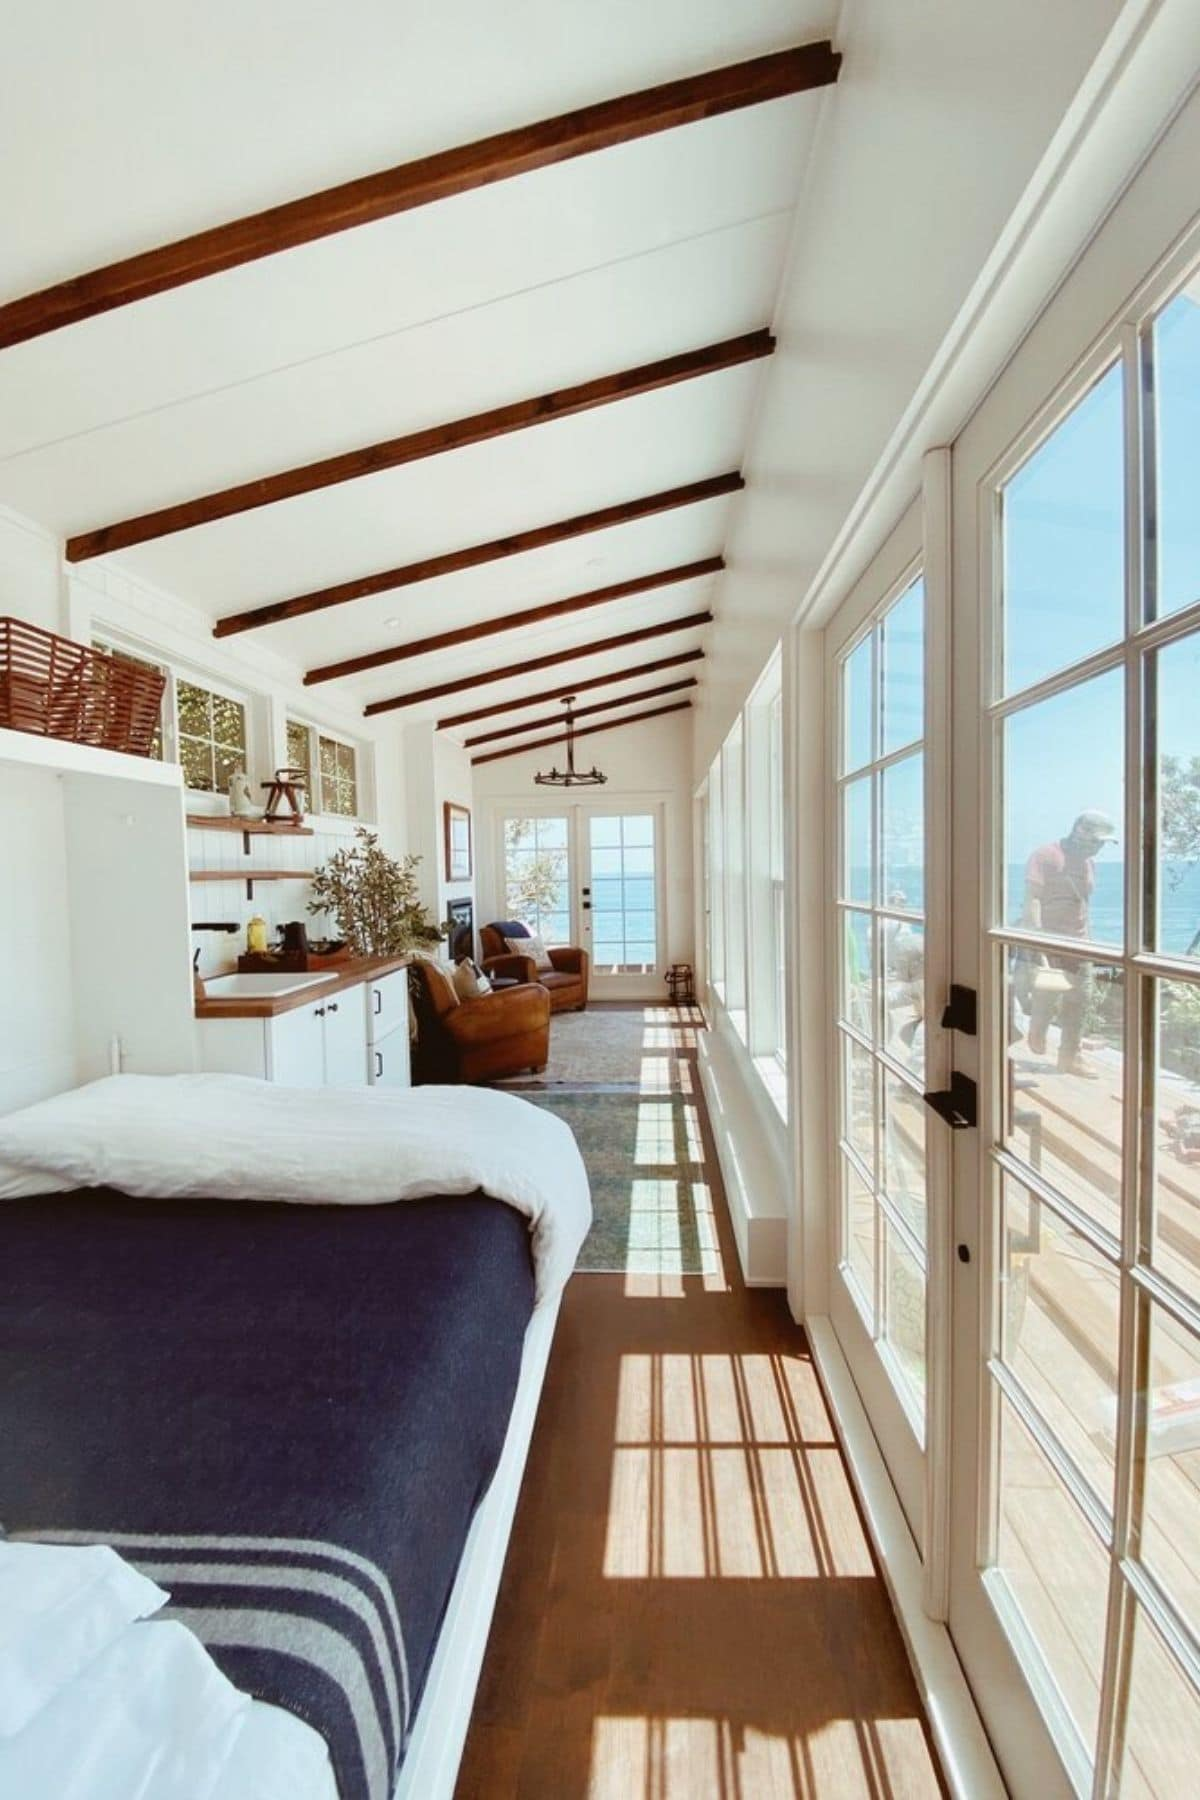 View down middle of tiny home with windows on right and bed on left